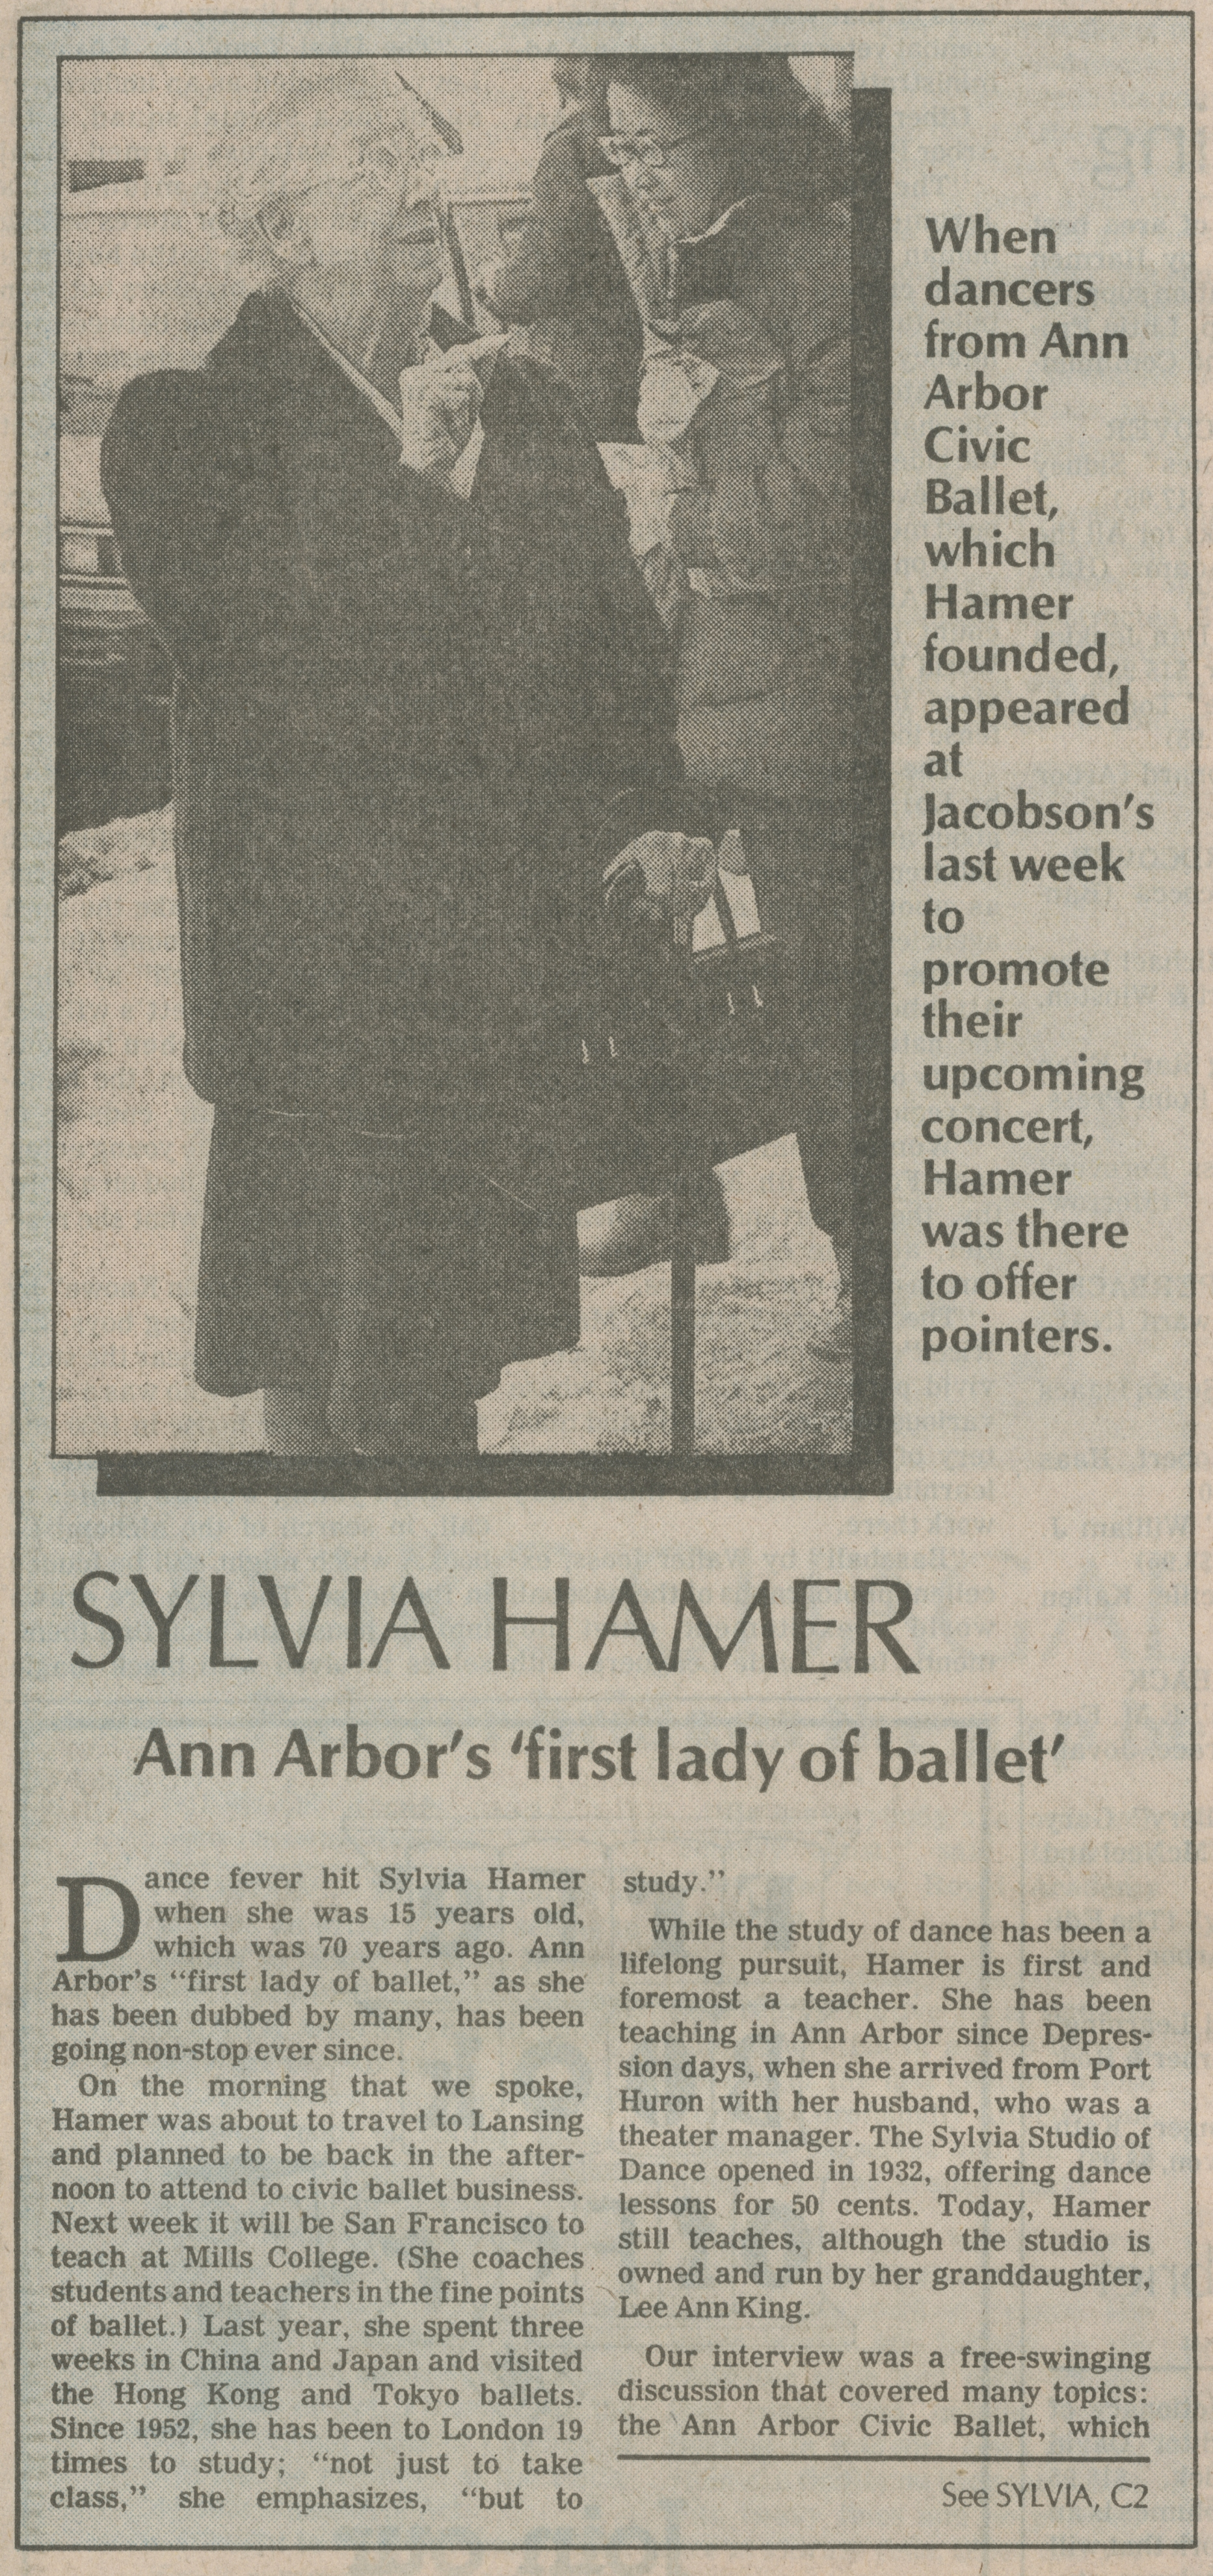 Sylvia Hamer Ann Arbor's 'first lady of ballet' image